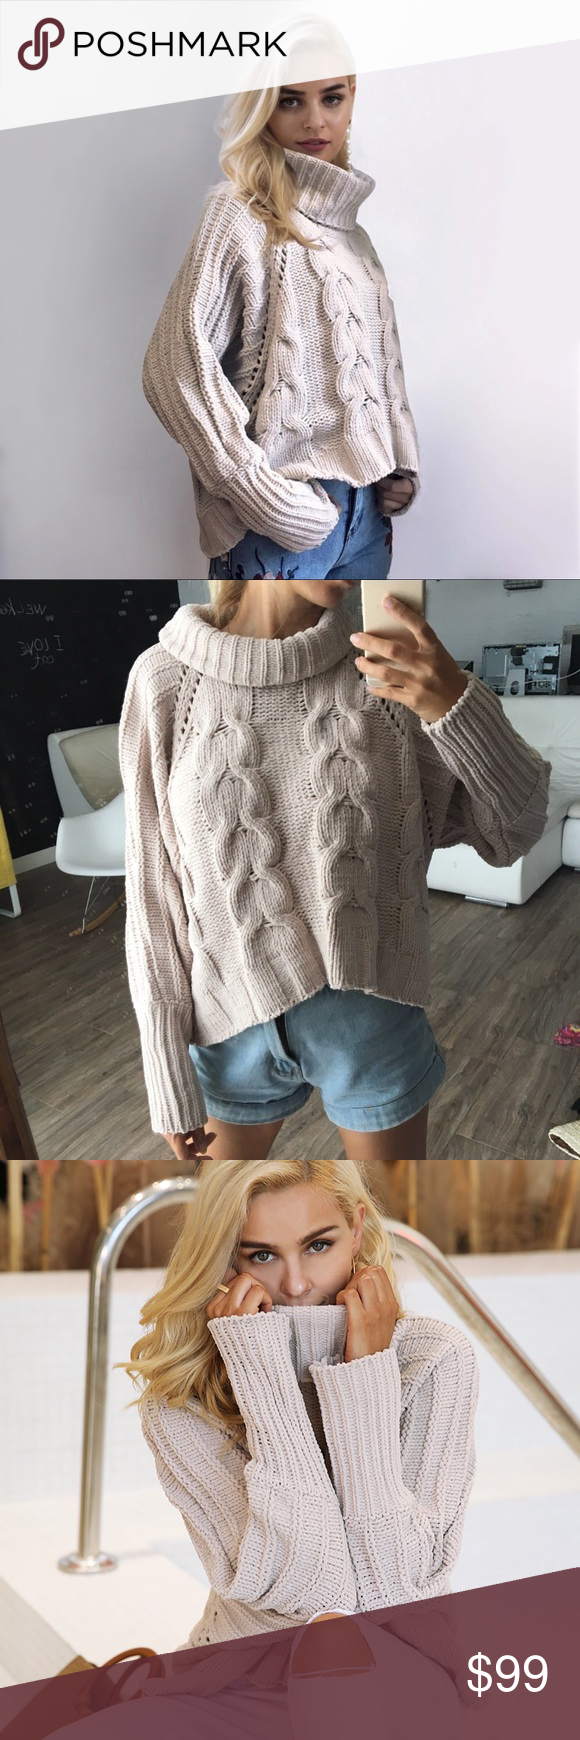 4c08f0fdcc6cd3 Loose Cable Knit Chunky Turtleneck Sweater Putty Thick, chunky knit, cozy  turtleneck style cable